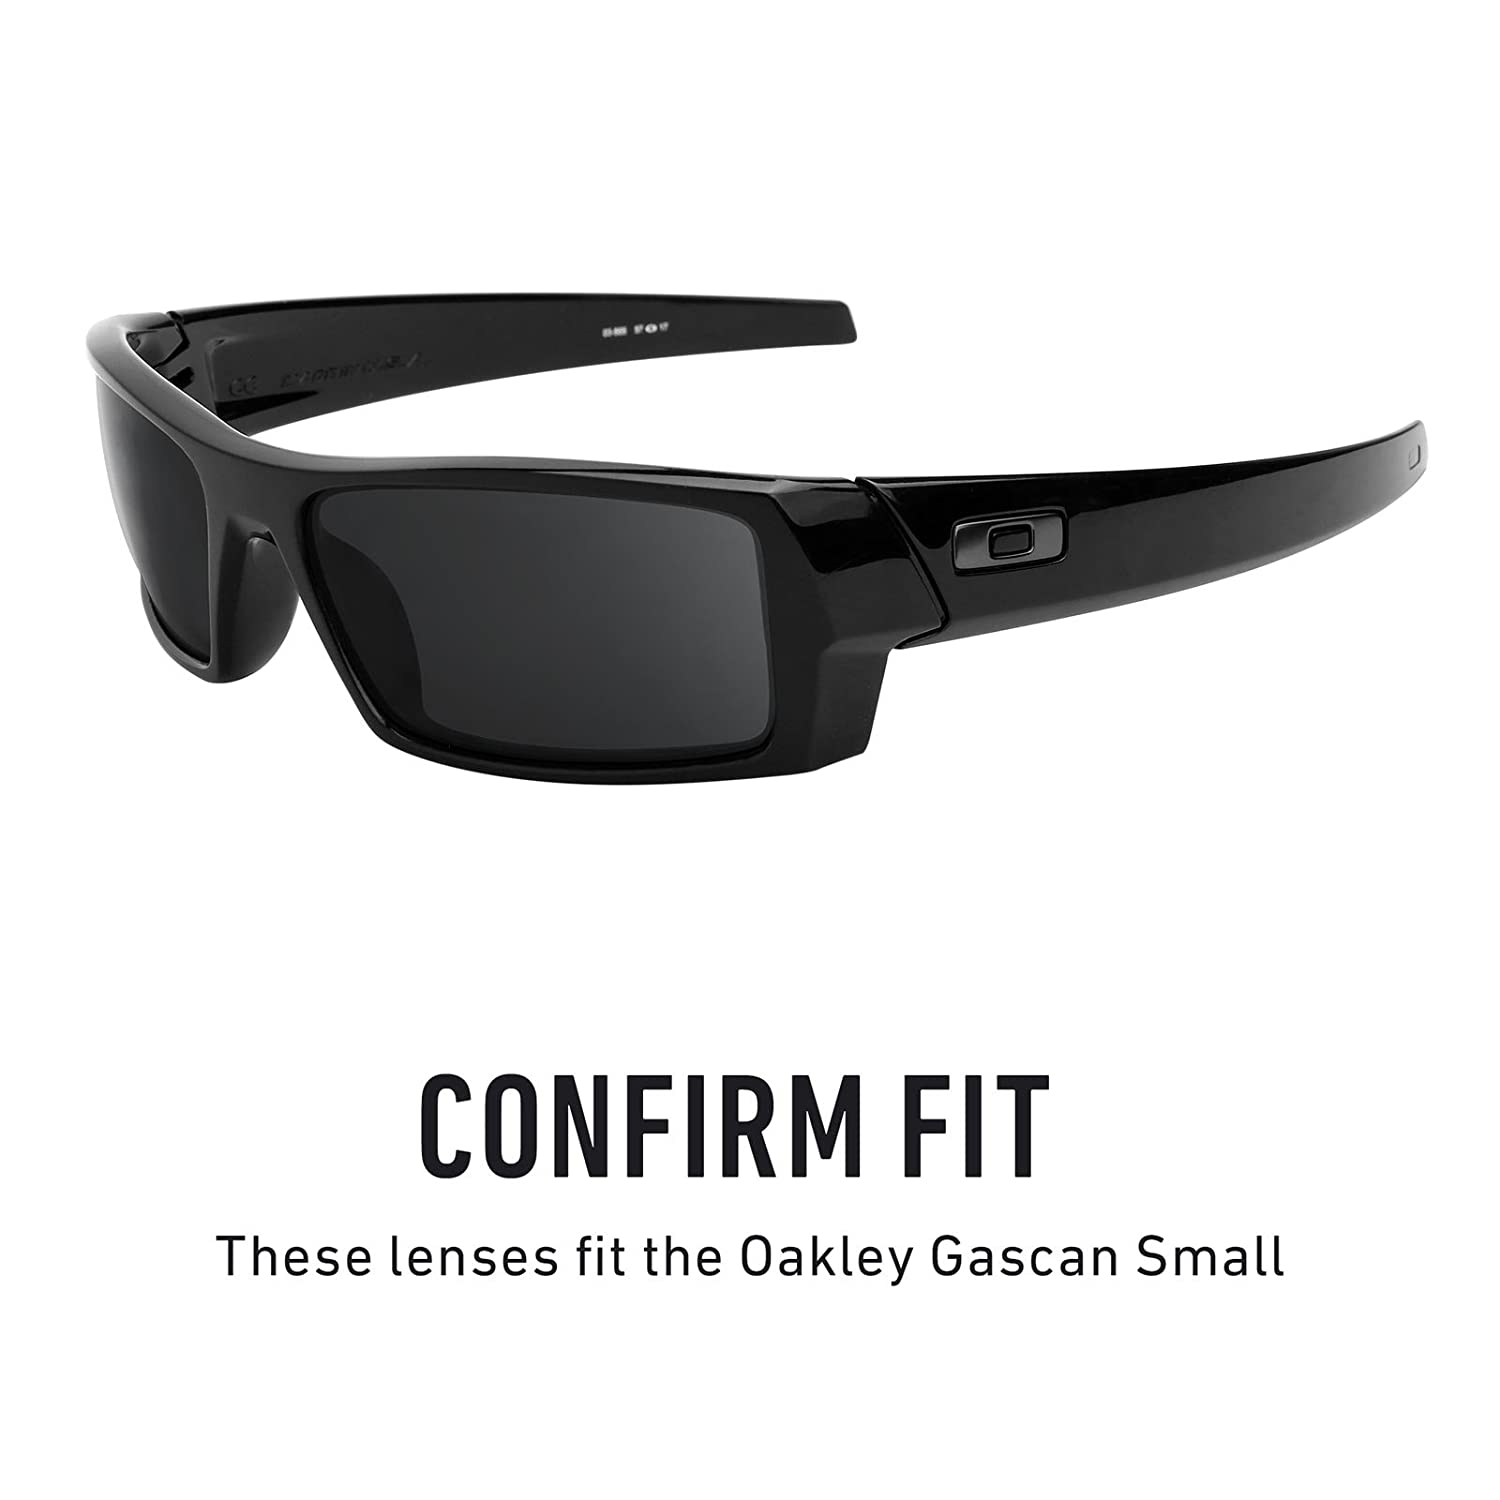 f6d553a3b4 Revant Replacement Lenses for Oakley Gascan Small Black Chrome MirrorShield  at Amazon Men s Clothing store